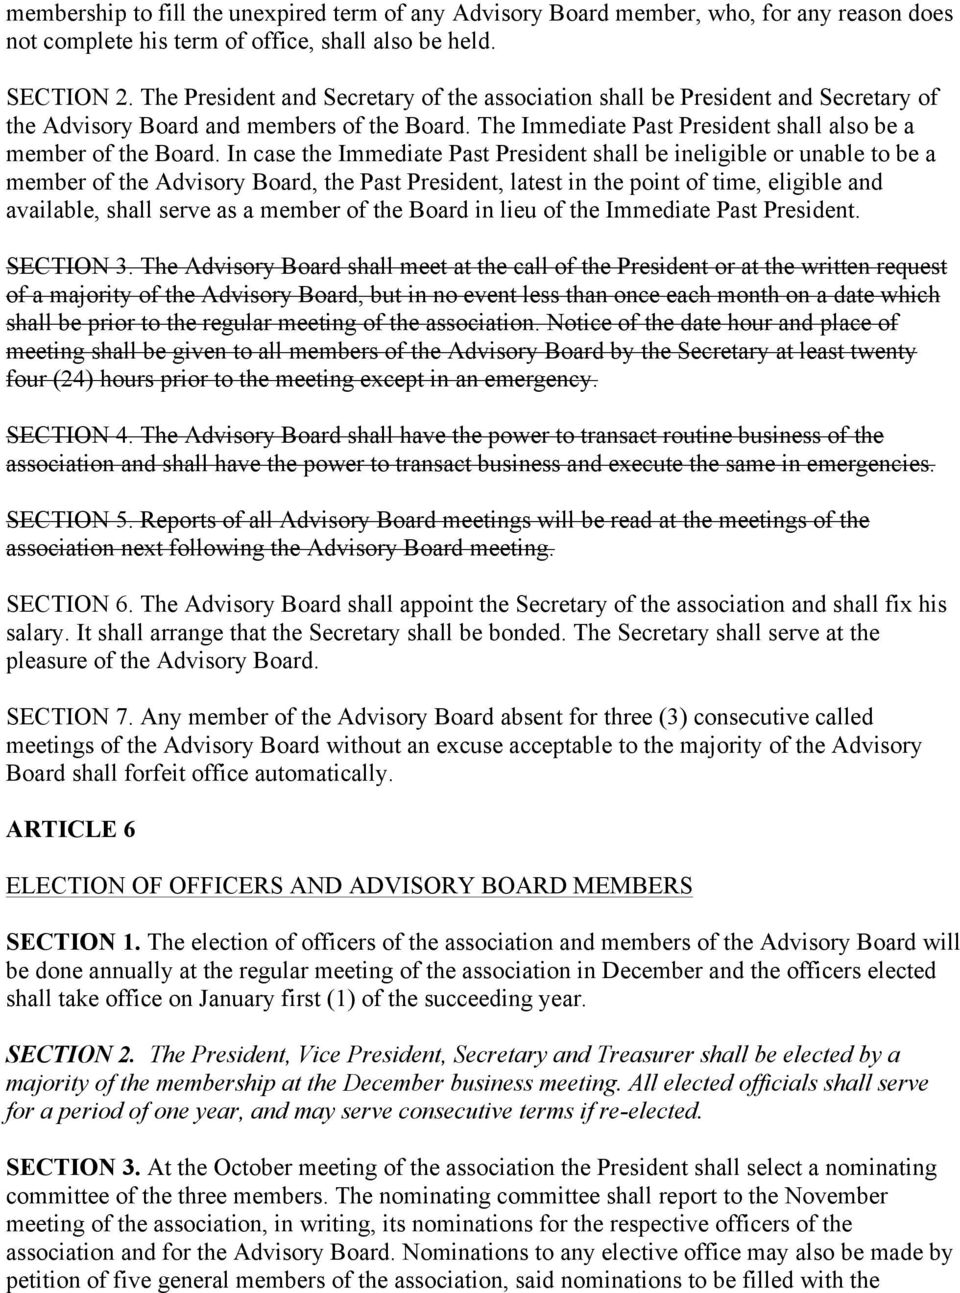 In case the Immediate Past President shall be ineligible or unable to be a member of the Advisory Board, the Past President, latest in the point of time, eligible and available, shall serve as a